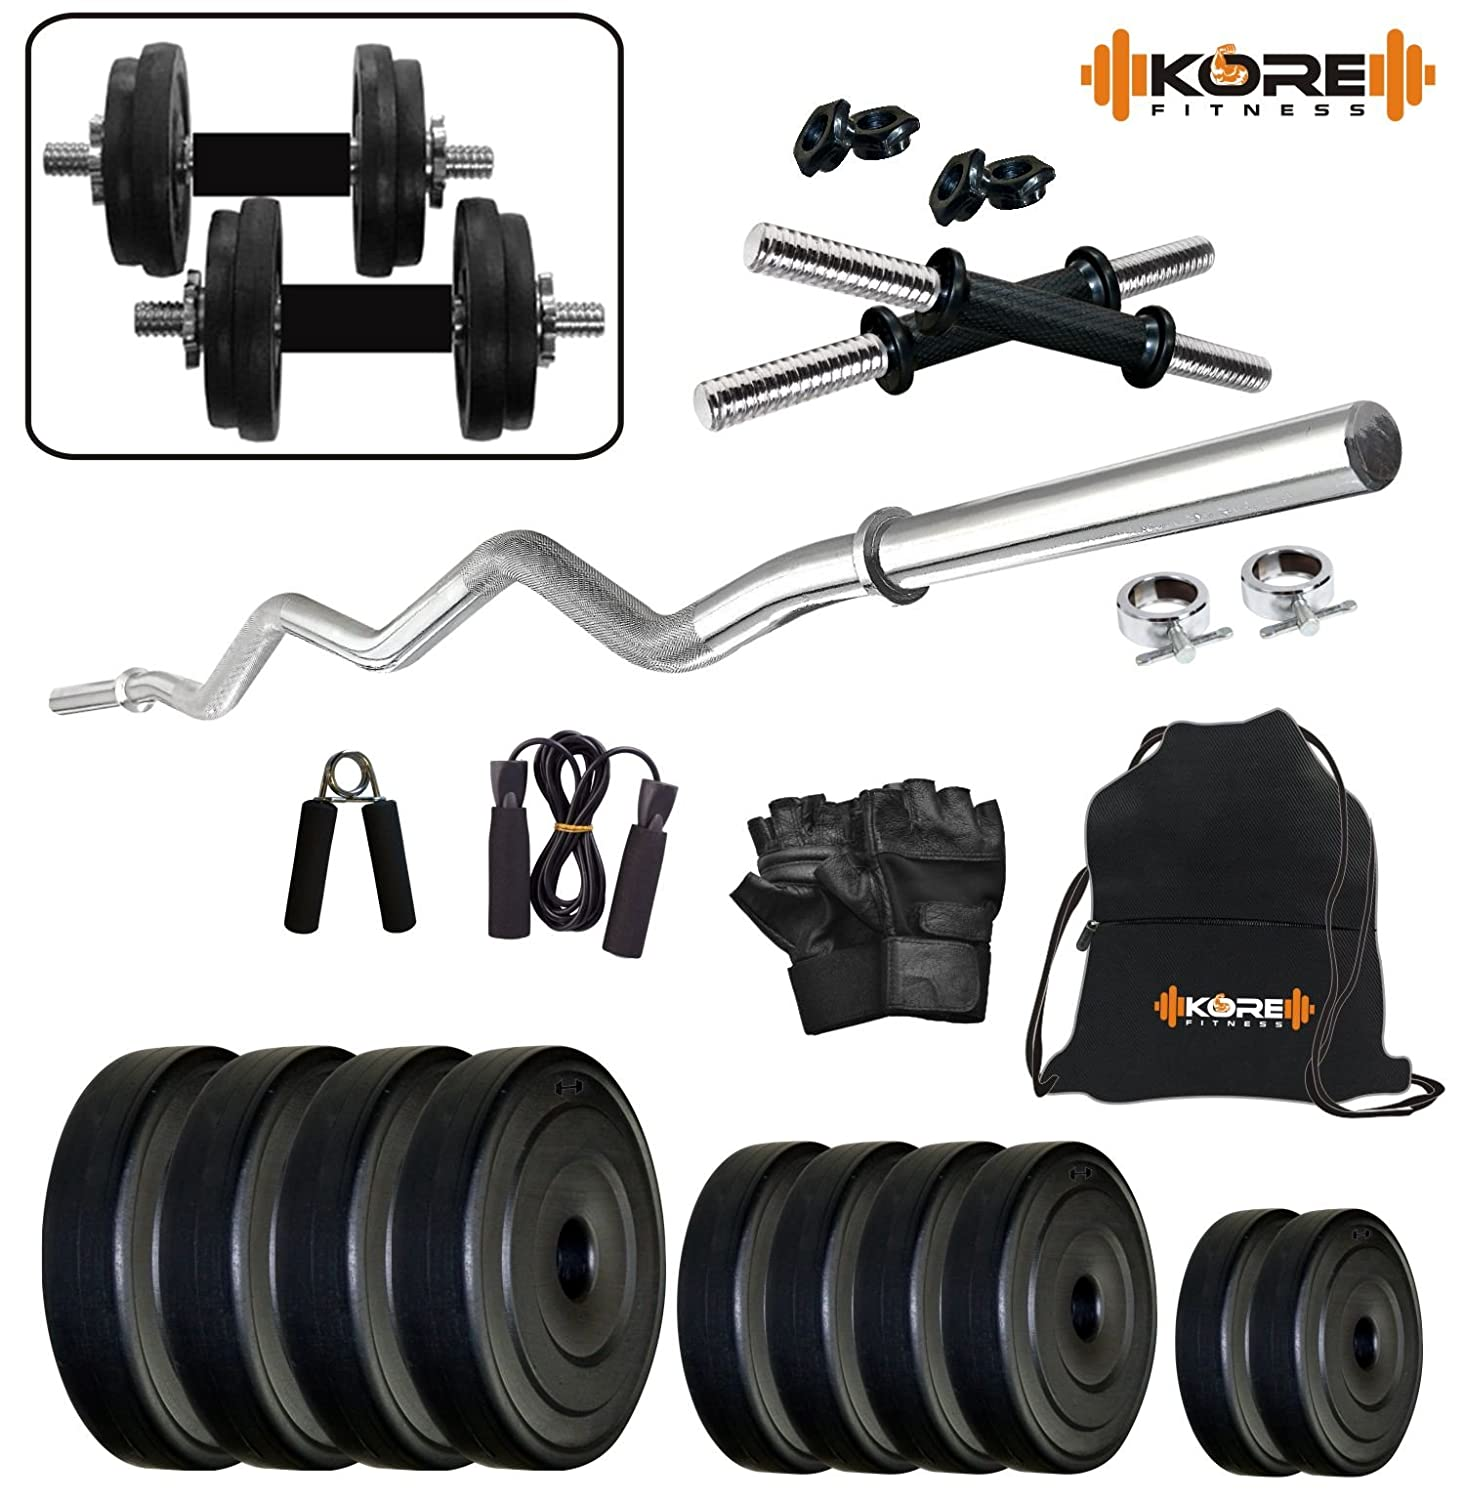 Kore K-PVC 10kg Combo 3 Leather Home Gym and Fitness Kit